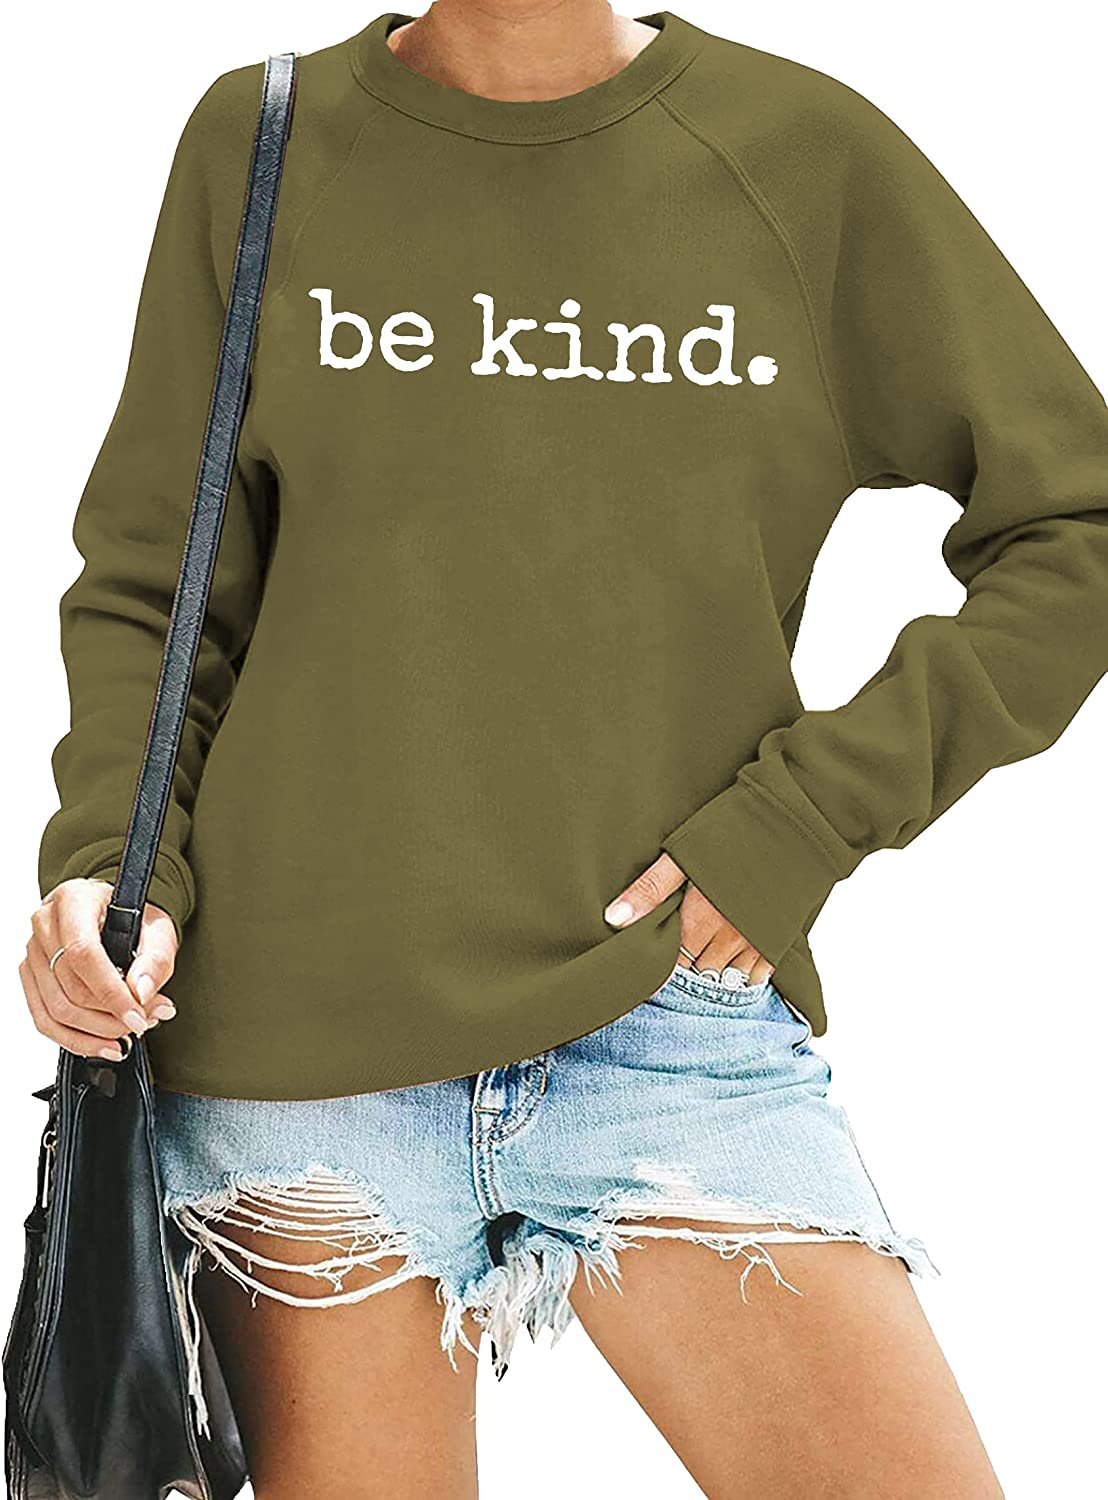 Women's Be Kind Sweatshirt Kindness Graphic Shirt Top Loose fit Crewneck Long Sleeve Pullover Blouse